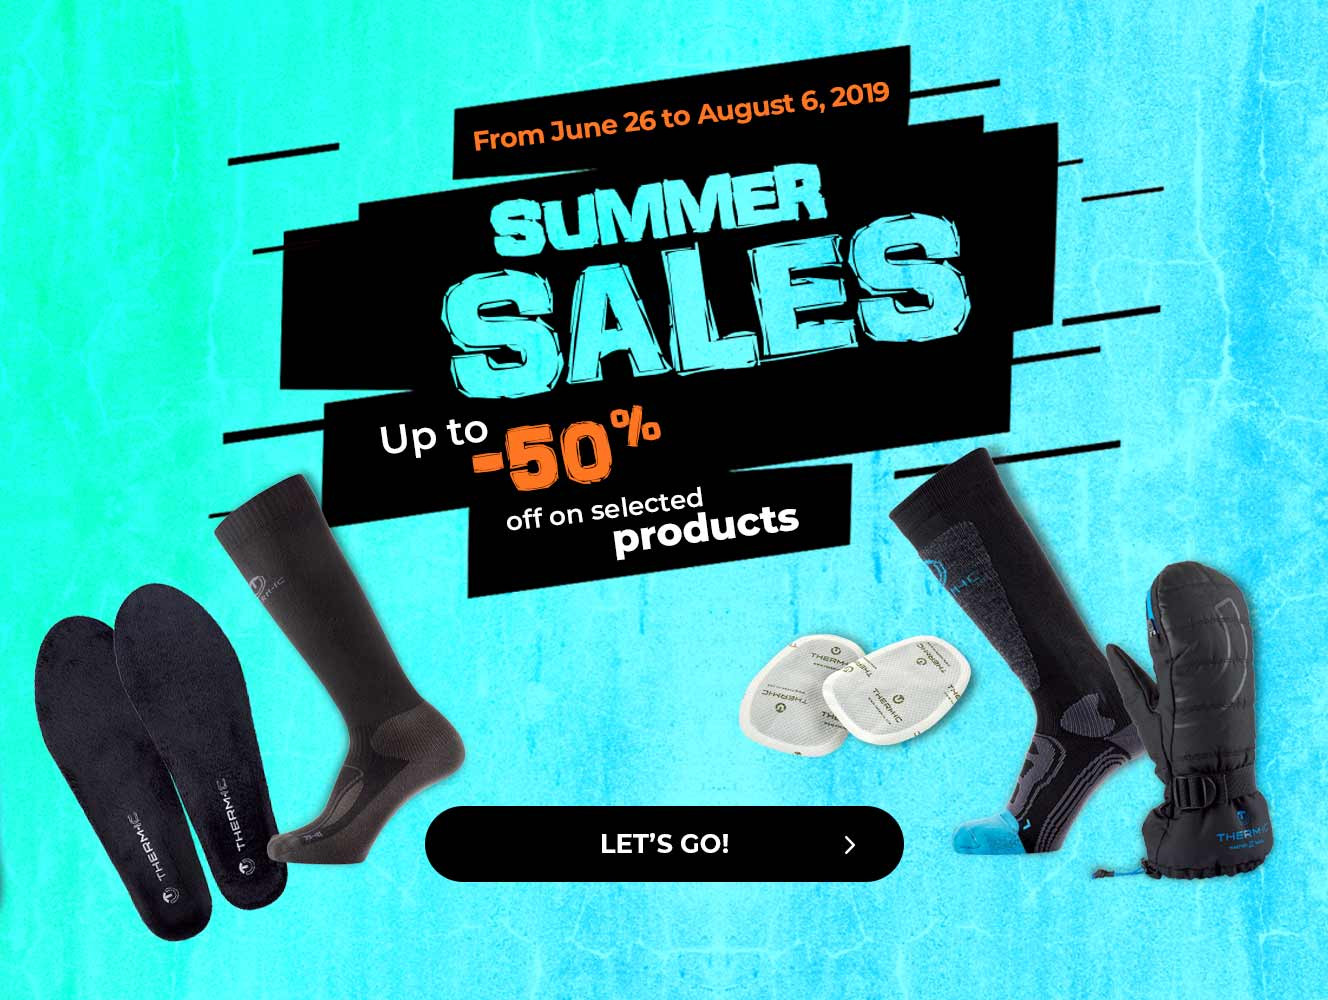 Up to -50% off on selected products